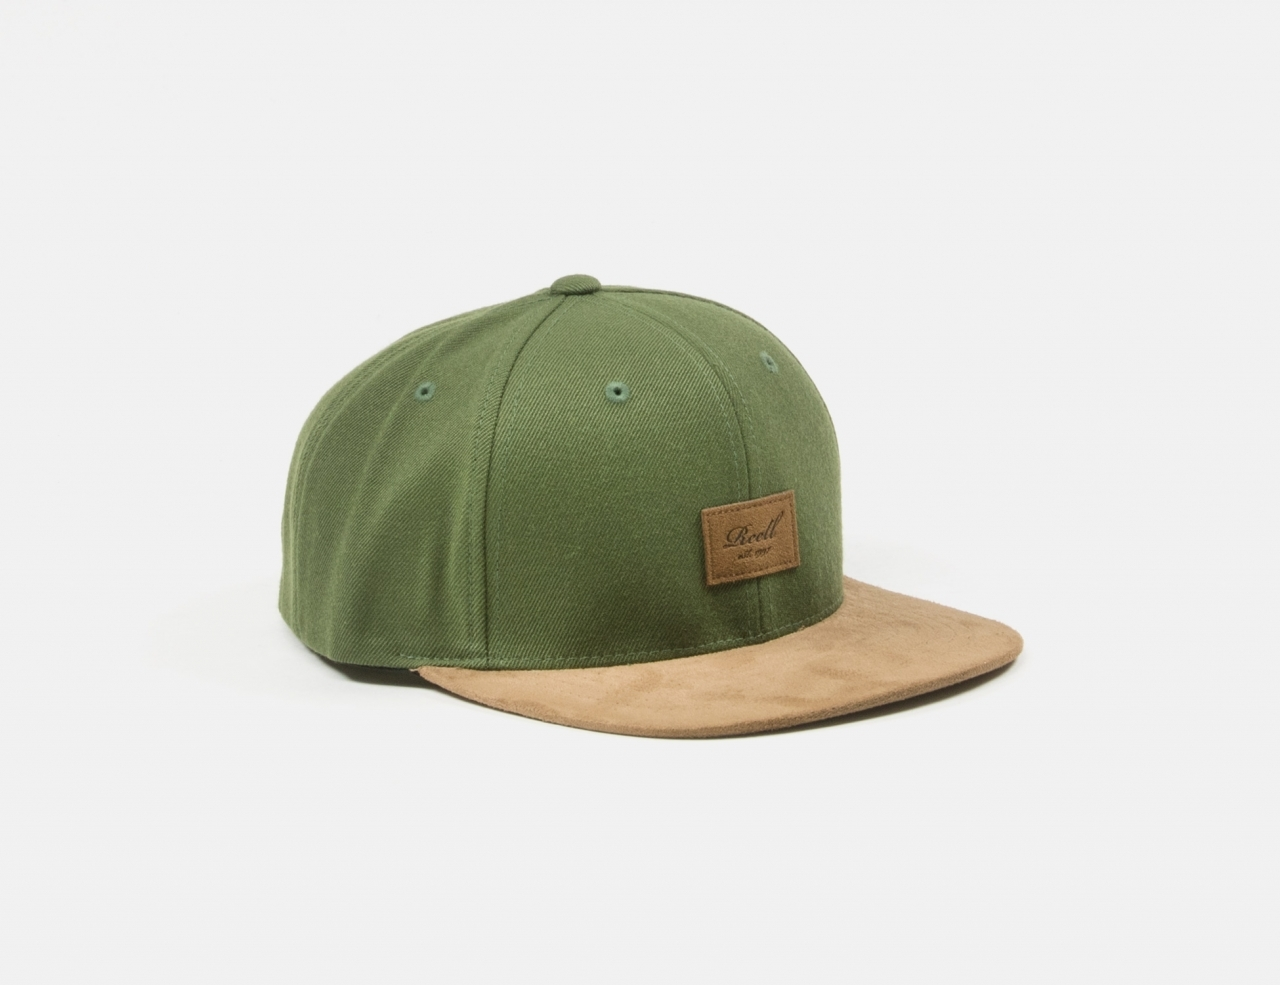 Reell Jeans Suede Snapback Cap - Army Olive